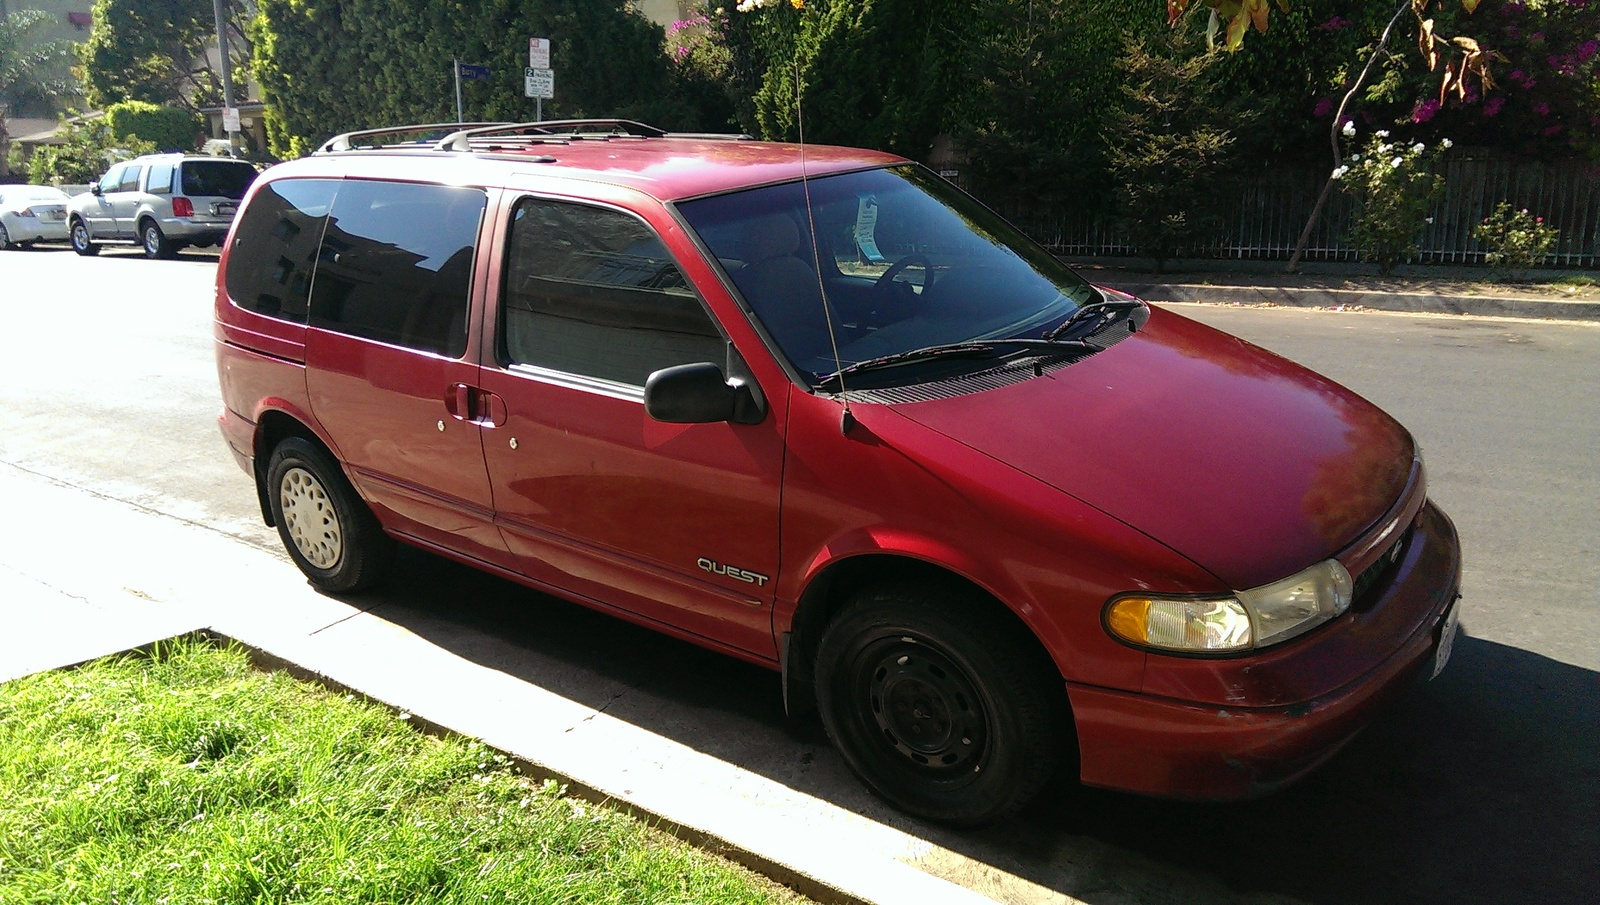 Picture of 1998 Nissan Quest 3 Dr XE Passenger Van